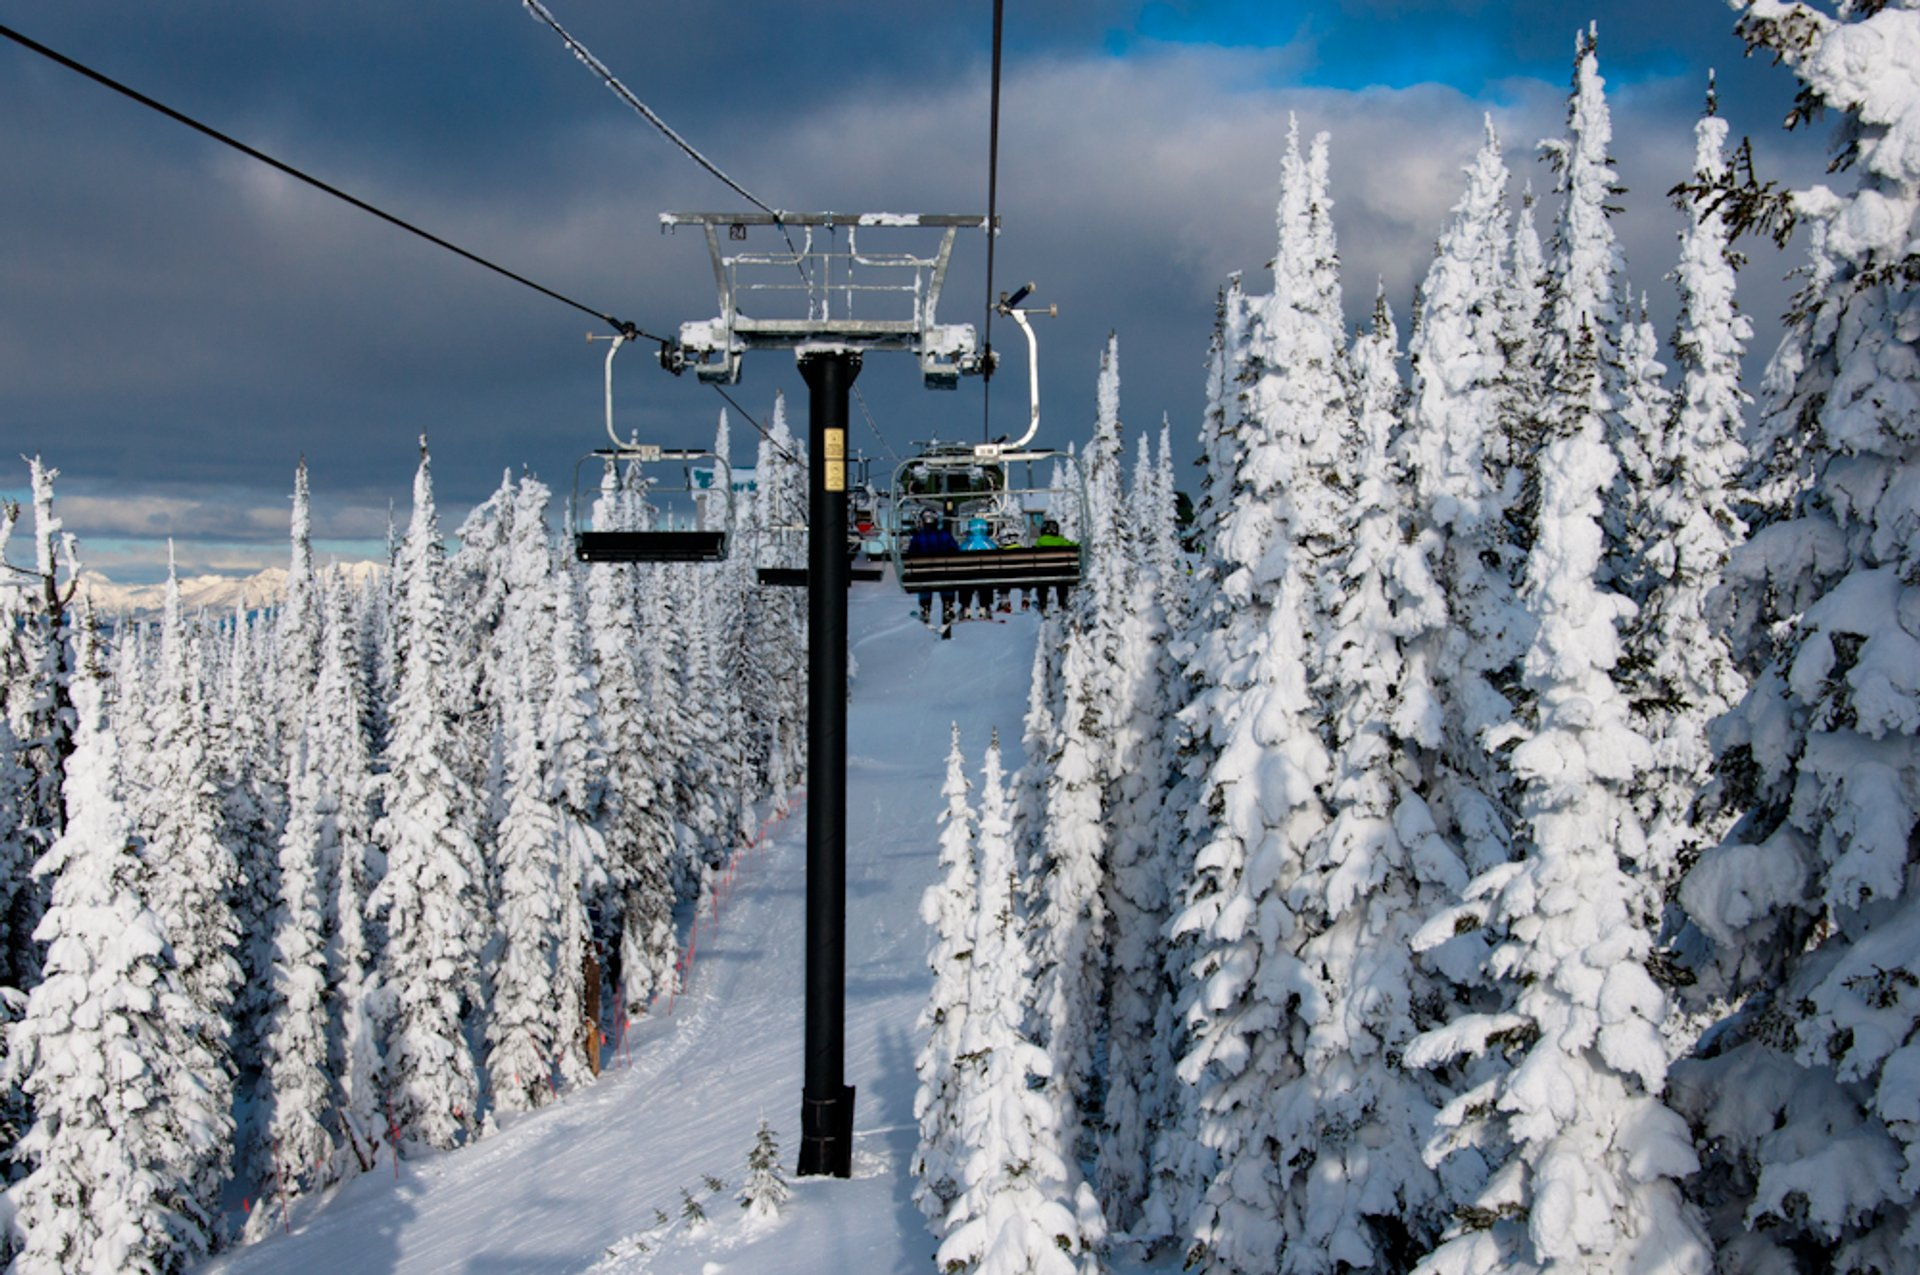 Whitefish ski resort 2020